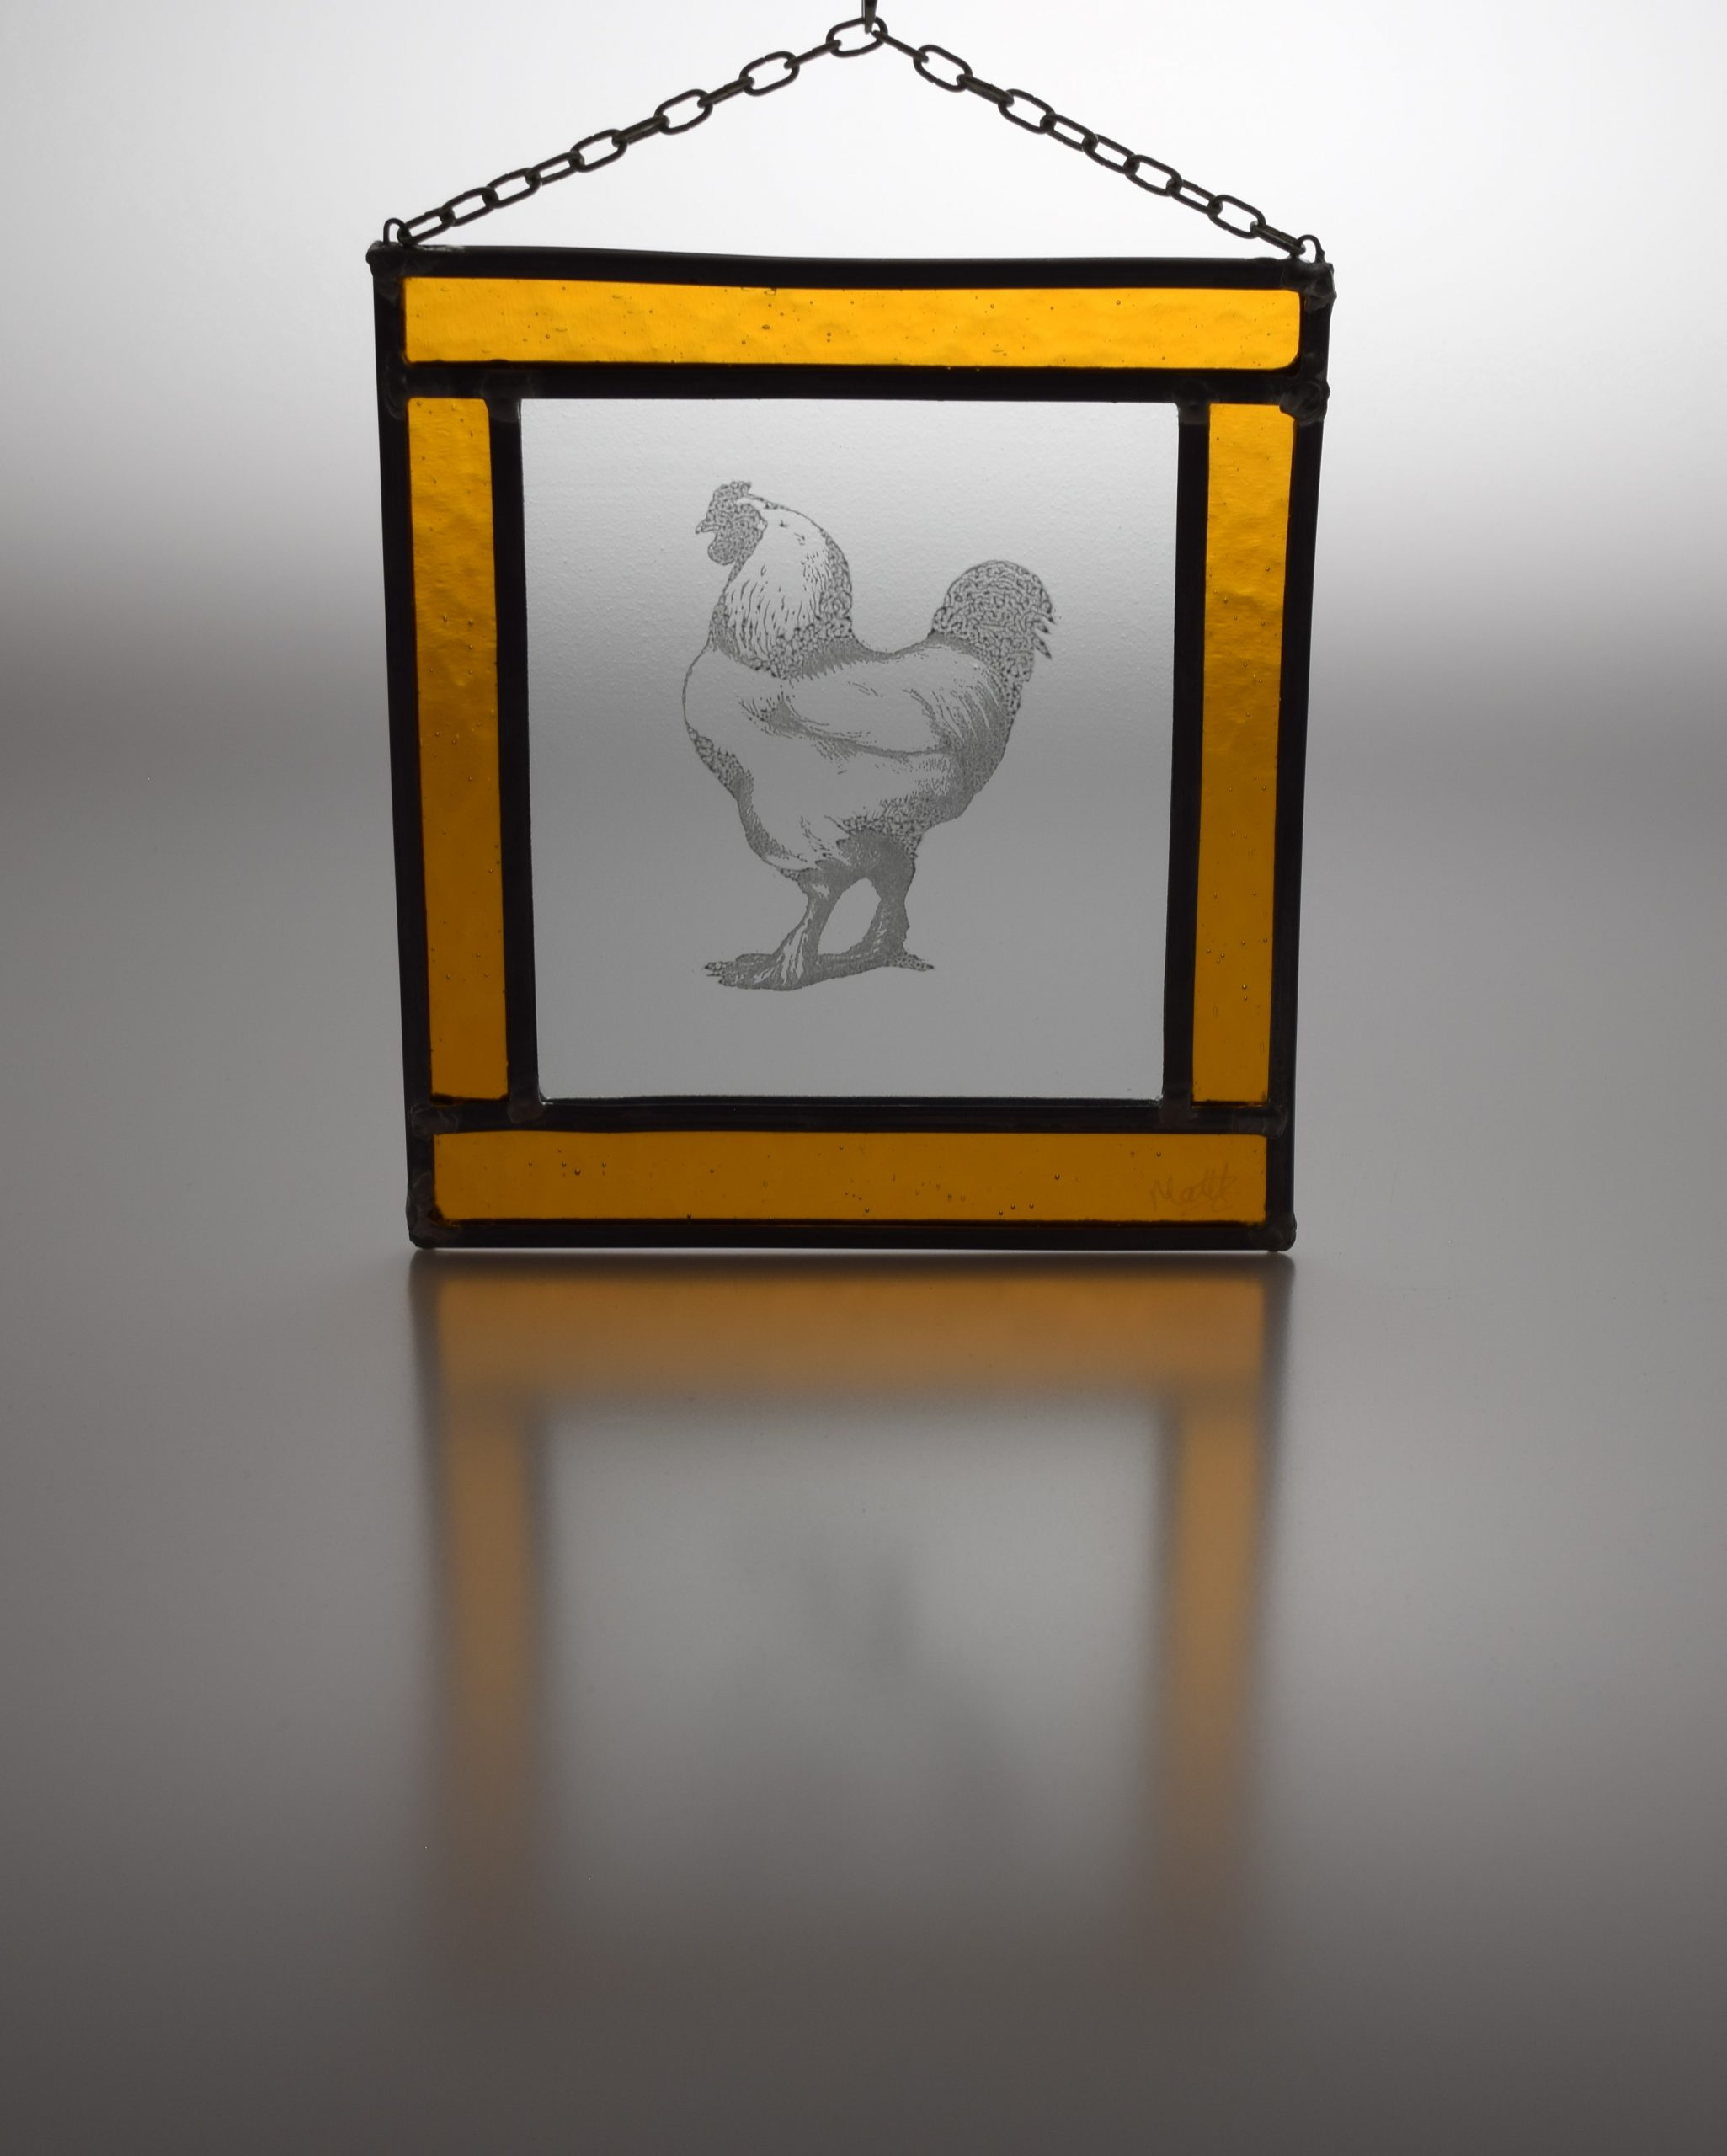 Stained glass cock picture with amber yellow glass frame and lead surround, with hanging chain attached